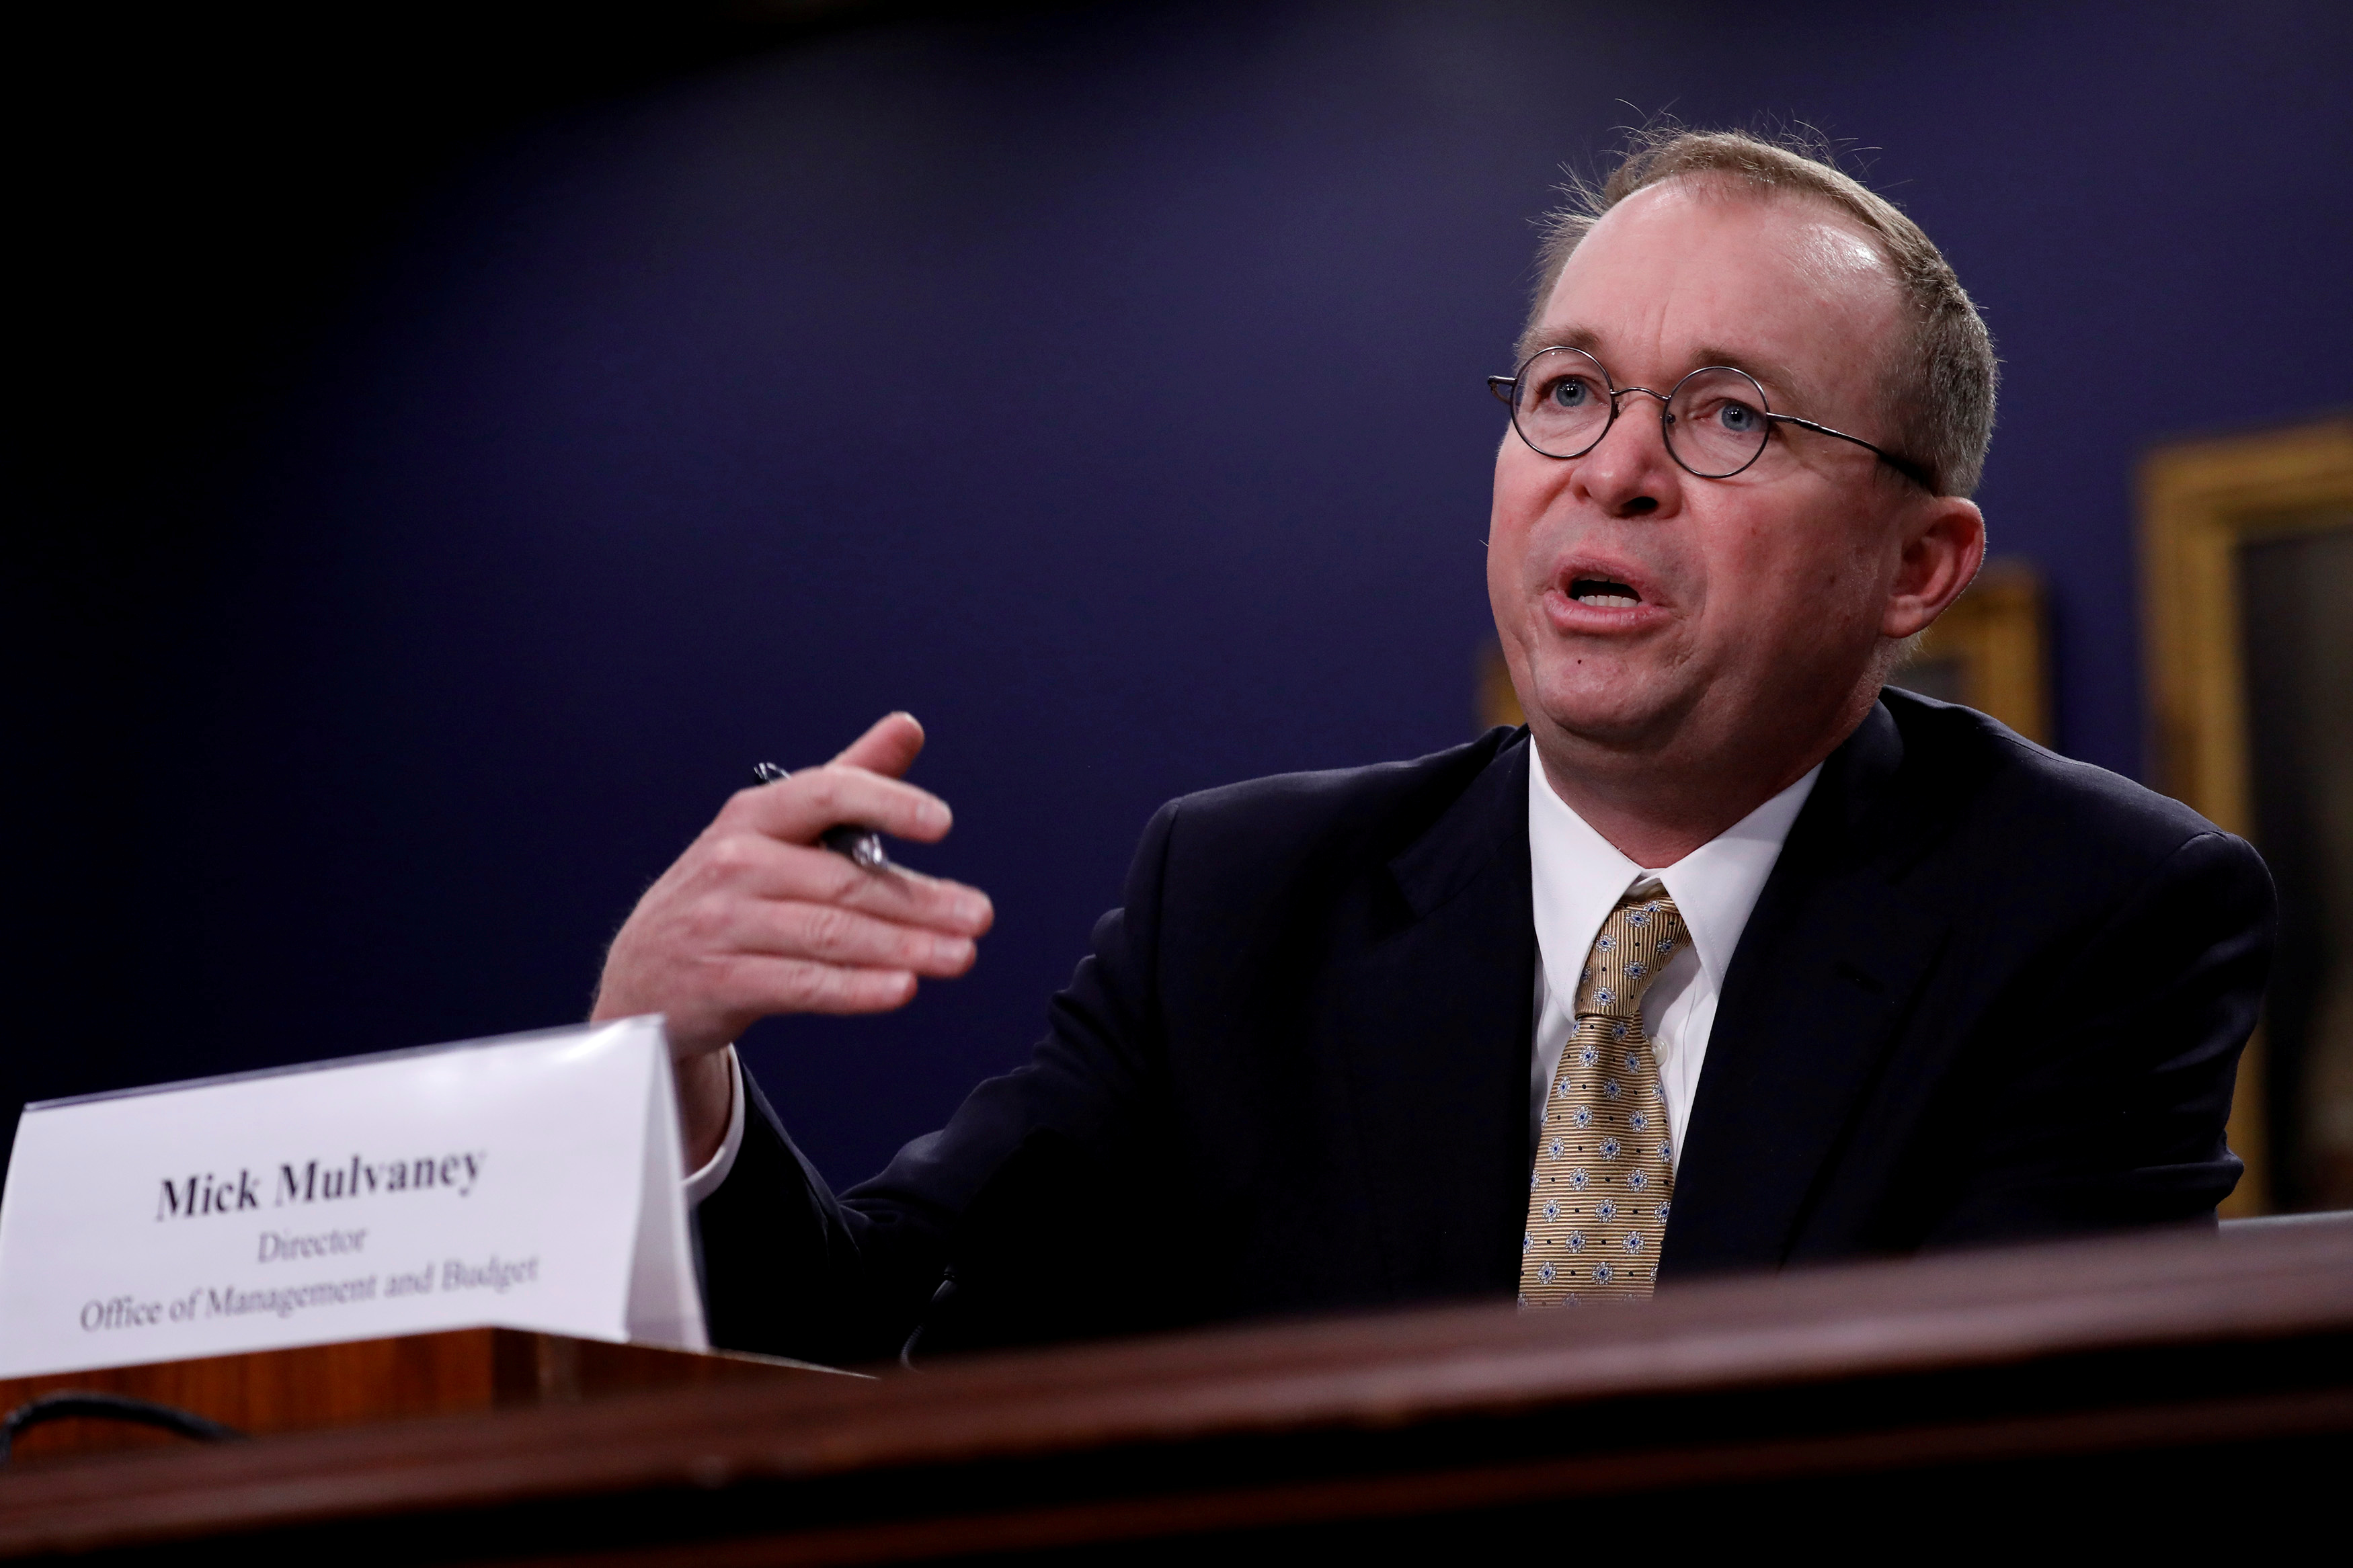 FILE PHOTO: Mick Mulvaney testifies before the House Appropriations Subcommittee on Financial Services and General Government on Capitol Hill in Washington, U.S., April 18, 2018. REUTERS/Aaron P. Bernstein/File Photo